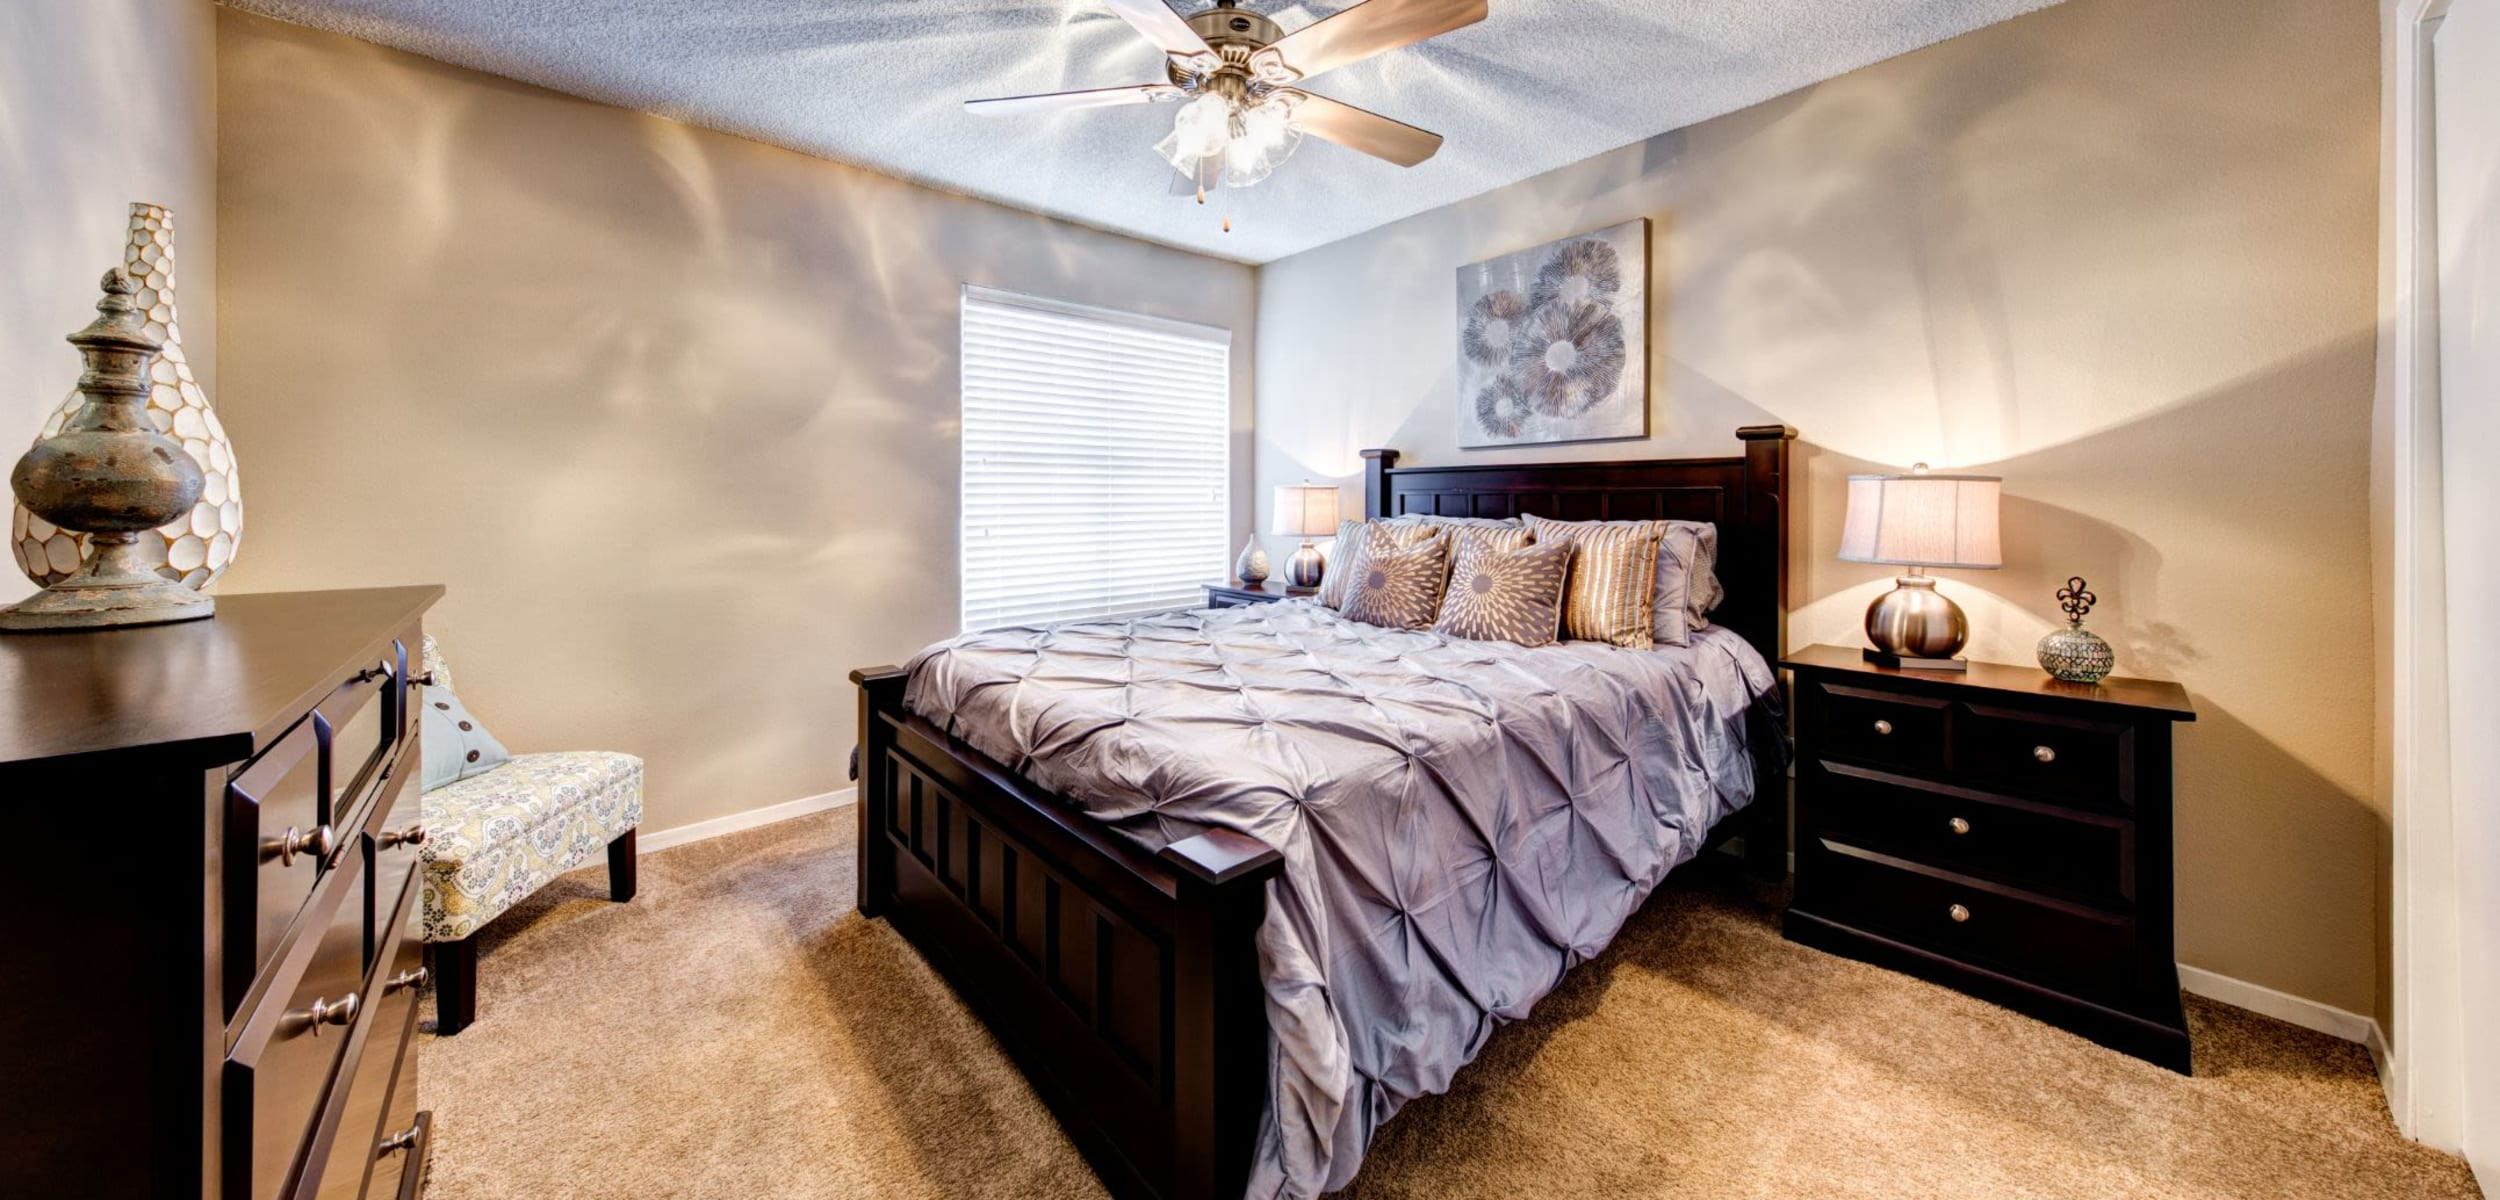 Bright bedroom with a ceiling fan at The Park at Flower Mound in Flower Mound, Texas